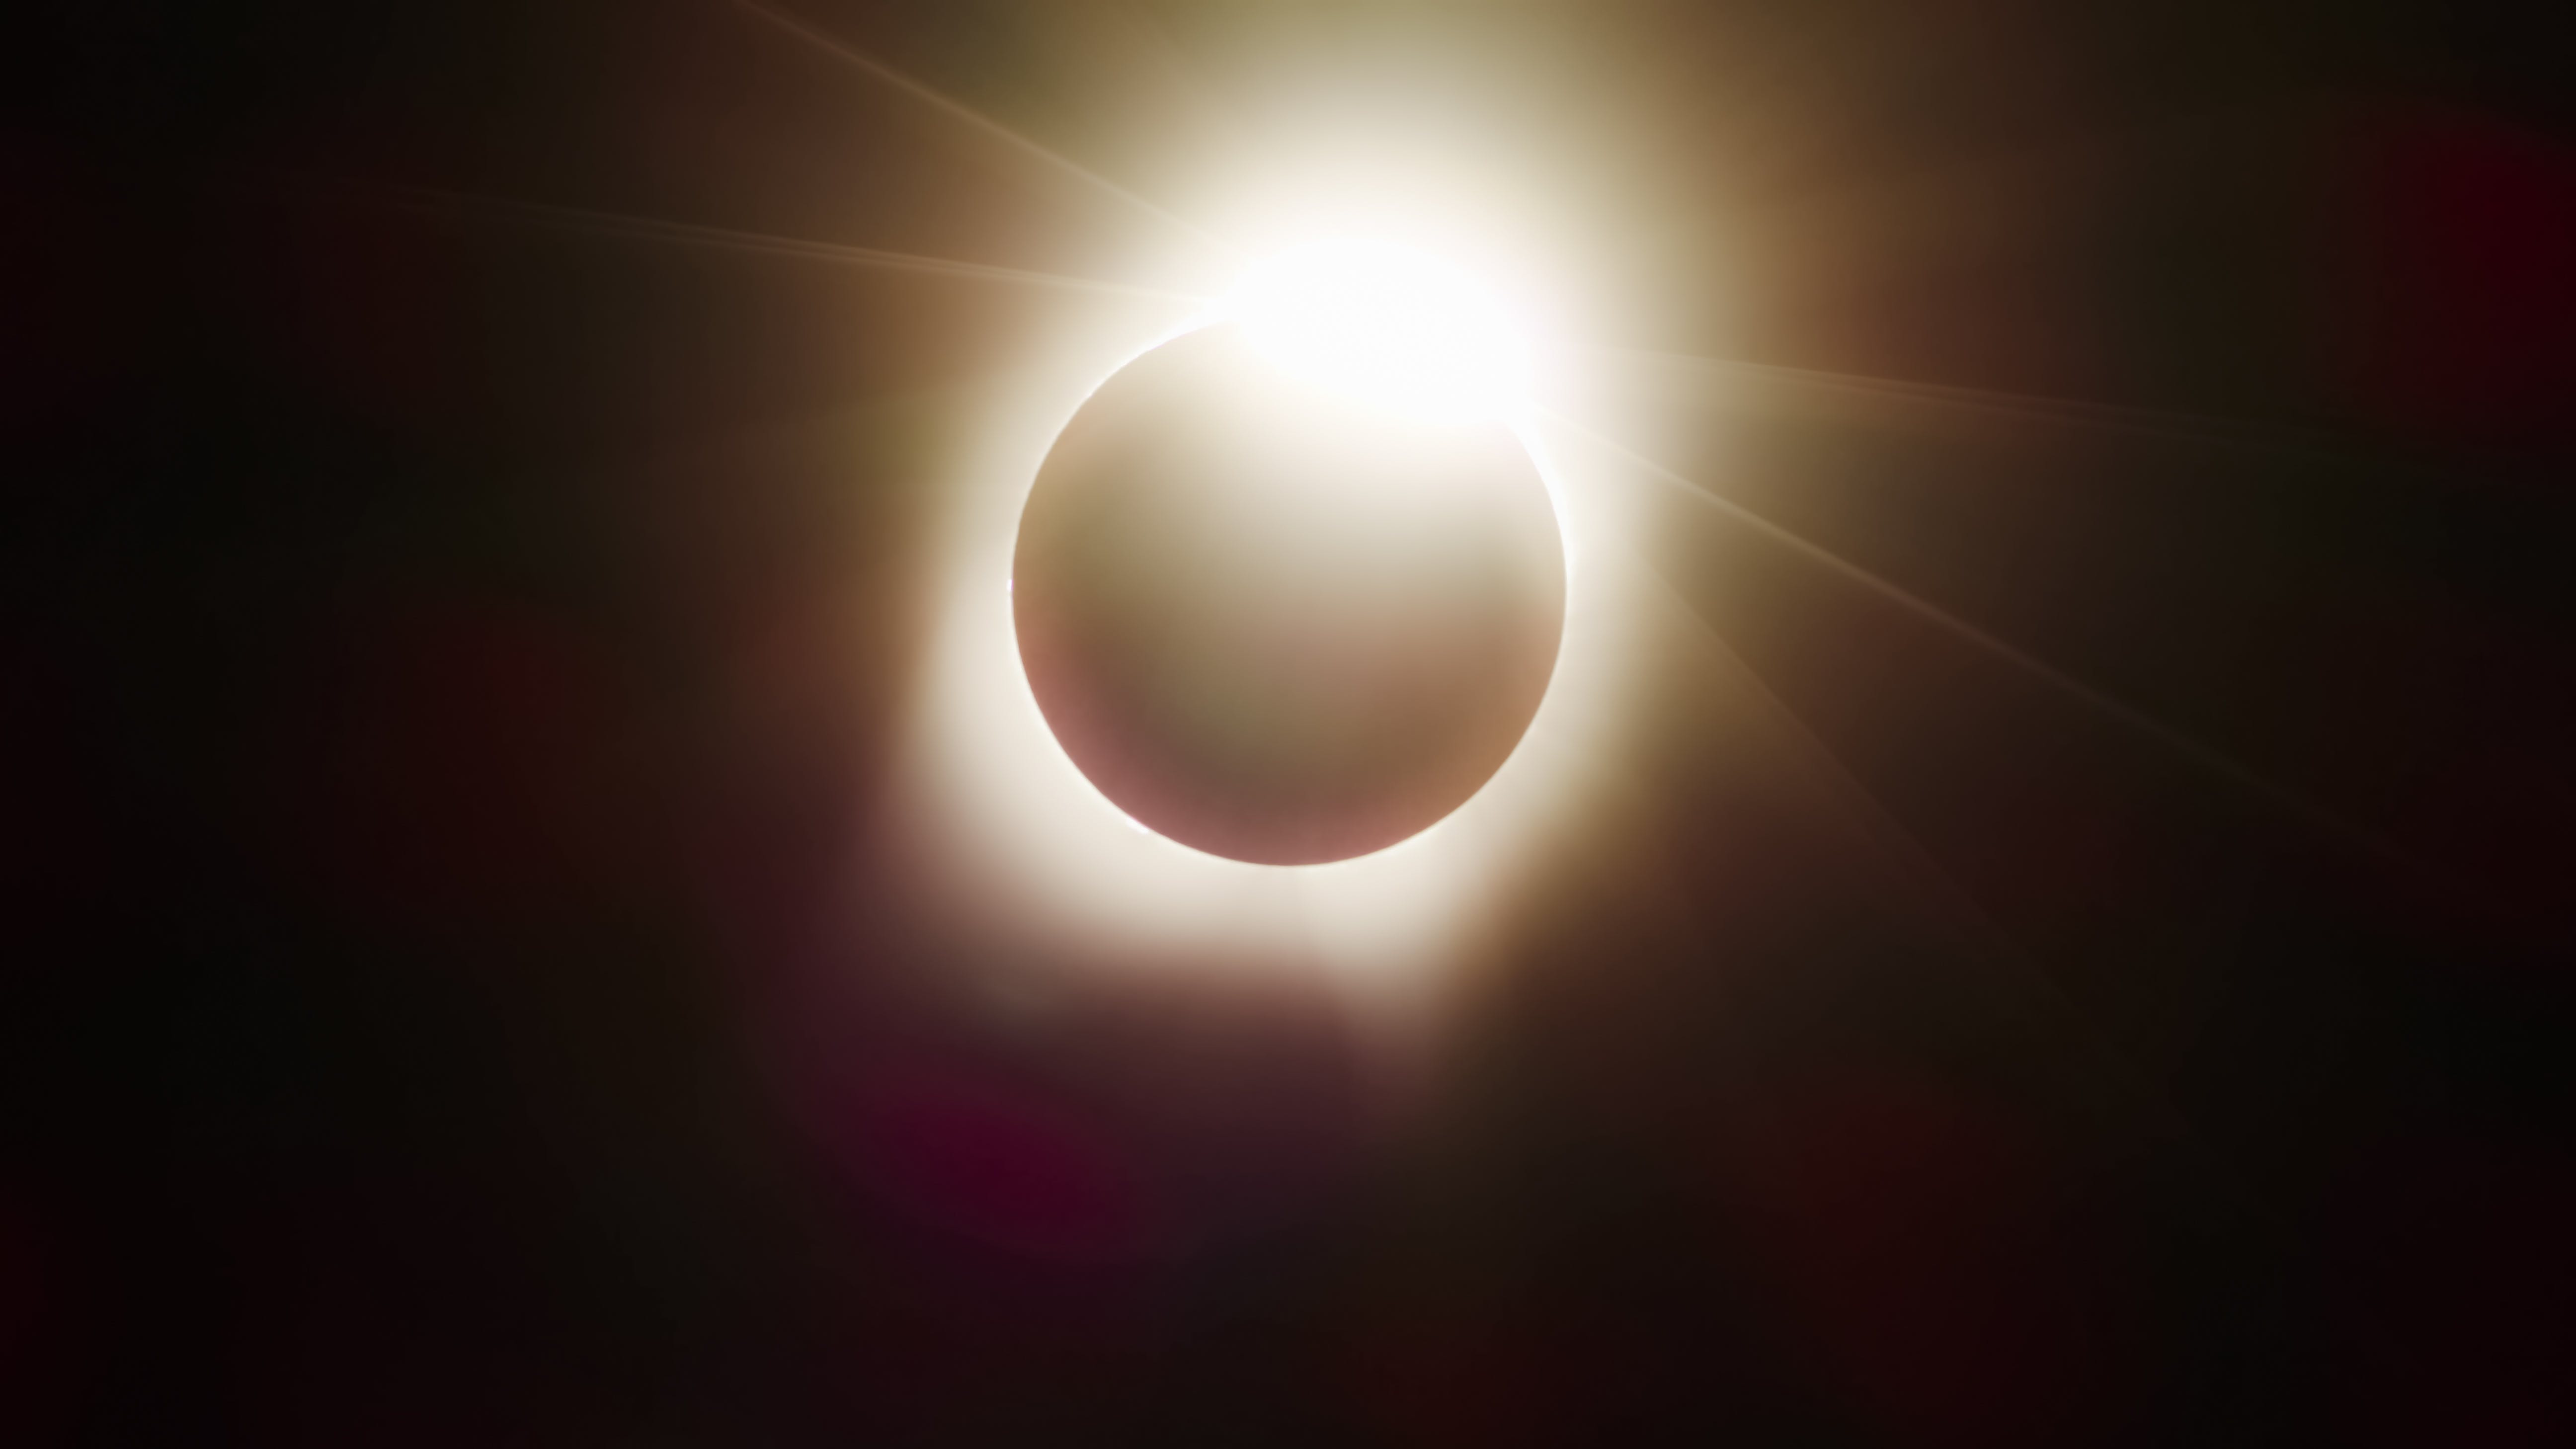 Free stock photo of #outdoorchallenge, eclipse